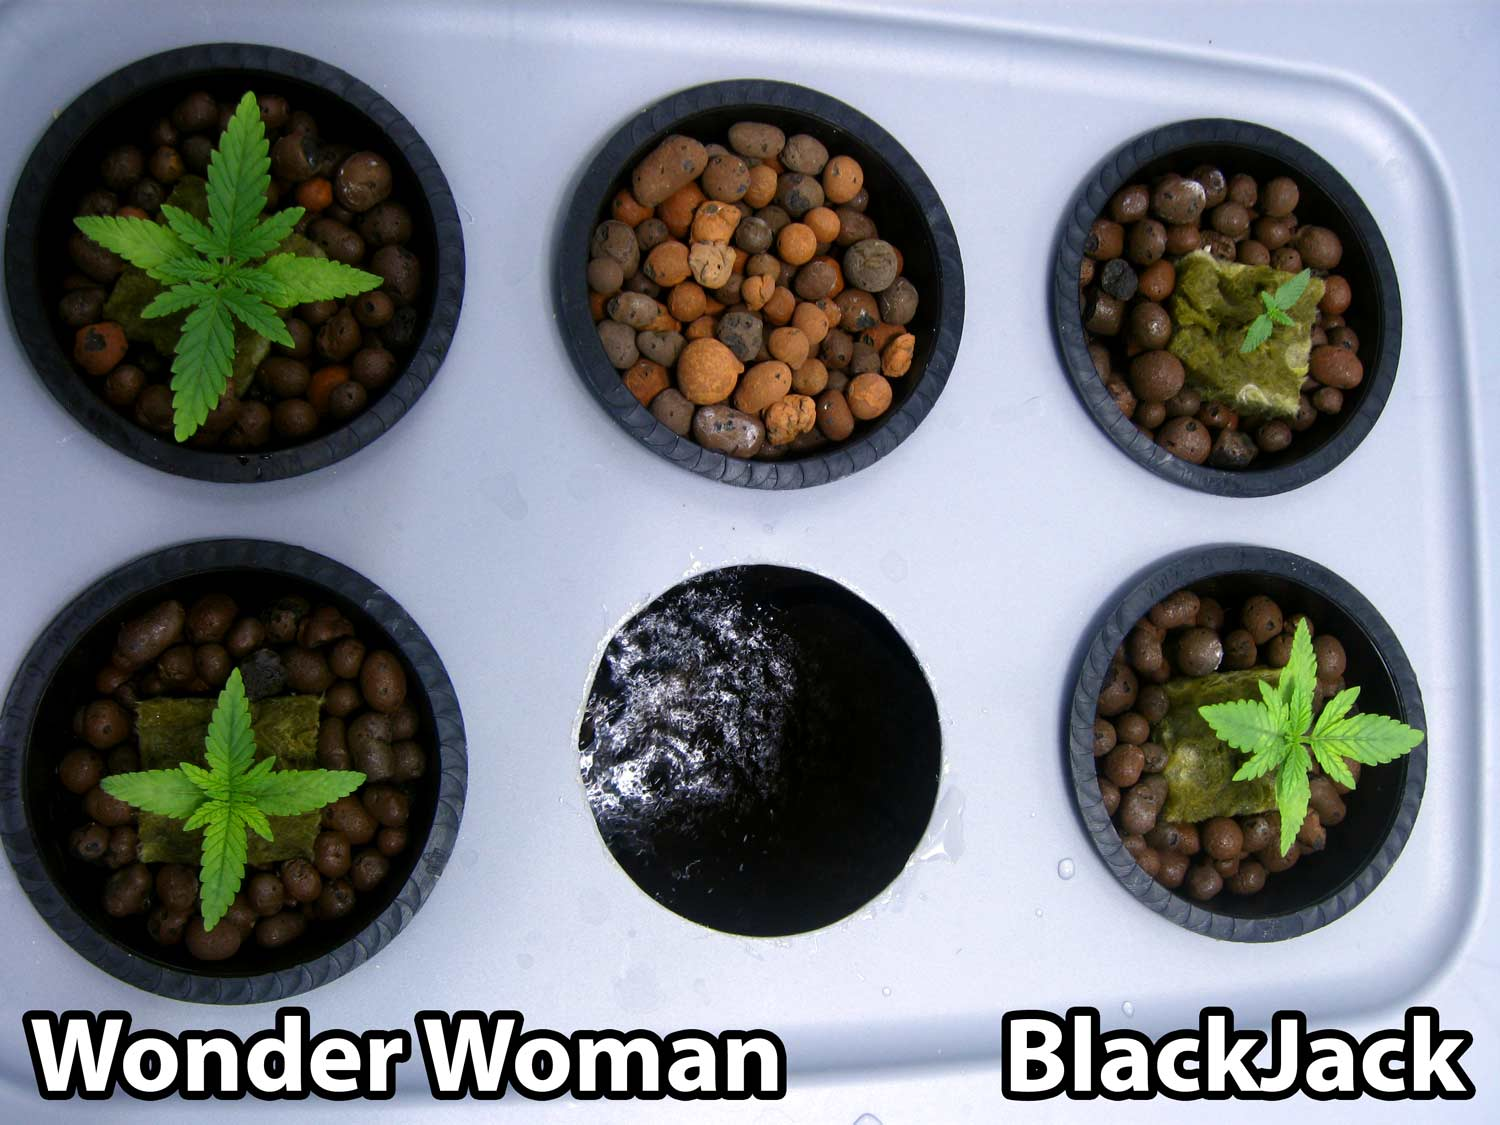 june 29 2013 you can seed the 4 cannabis seedlinds in our top